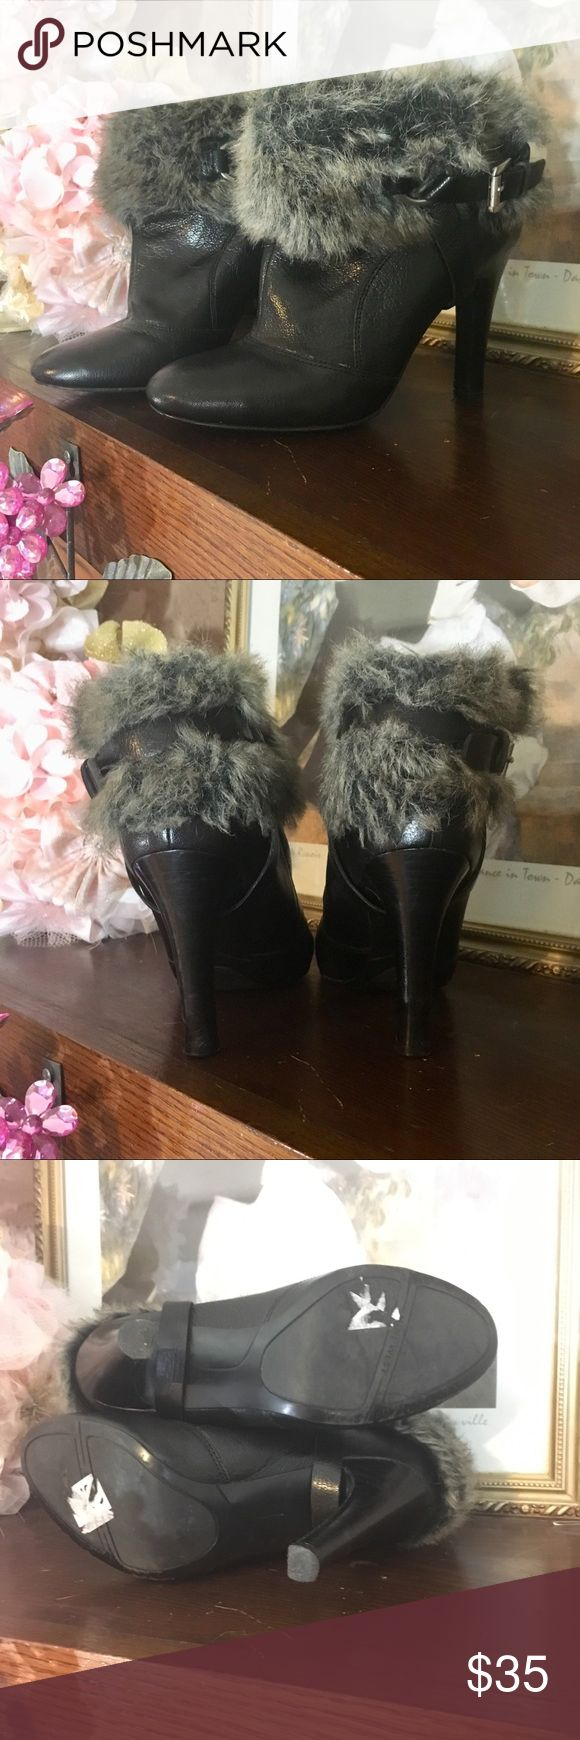 """NINE WEST """"JAMACAME"""" BOOTIES BRAND: NINE WEST  TYPE: LEATHER BLACK ANKLE BOOTIE WITH FAUX FUR AND ANKLE WRAP STRAP. STYLE """"JAMACAME"""".  COLOR: BLACK, GRAY  SIZE: 9M  APPROXIMATE MEASUREMENTS: 4IN HEEL  FABRIC CONTENT: SEE PICTURES  CONDITION: GOOD PRE OWNED CONDITION. WEAR CONSISTENT WITH MINIMAL USE. Nine West Shoes Ankle Boots & Booties"""